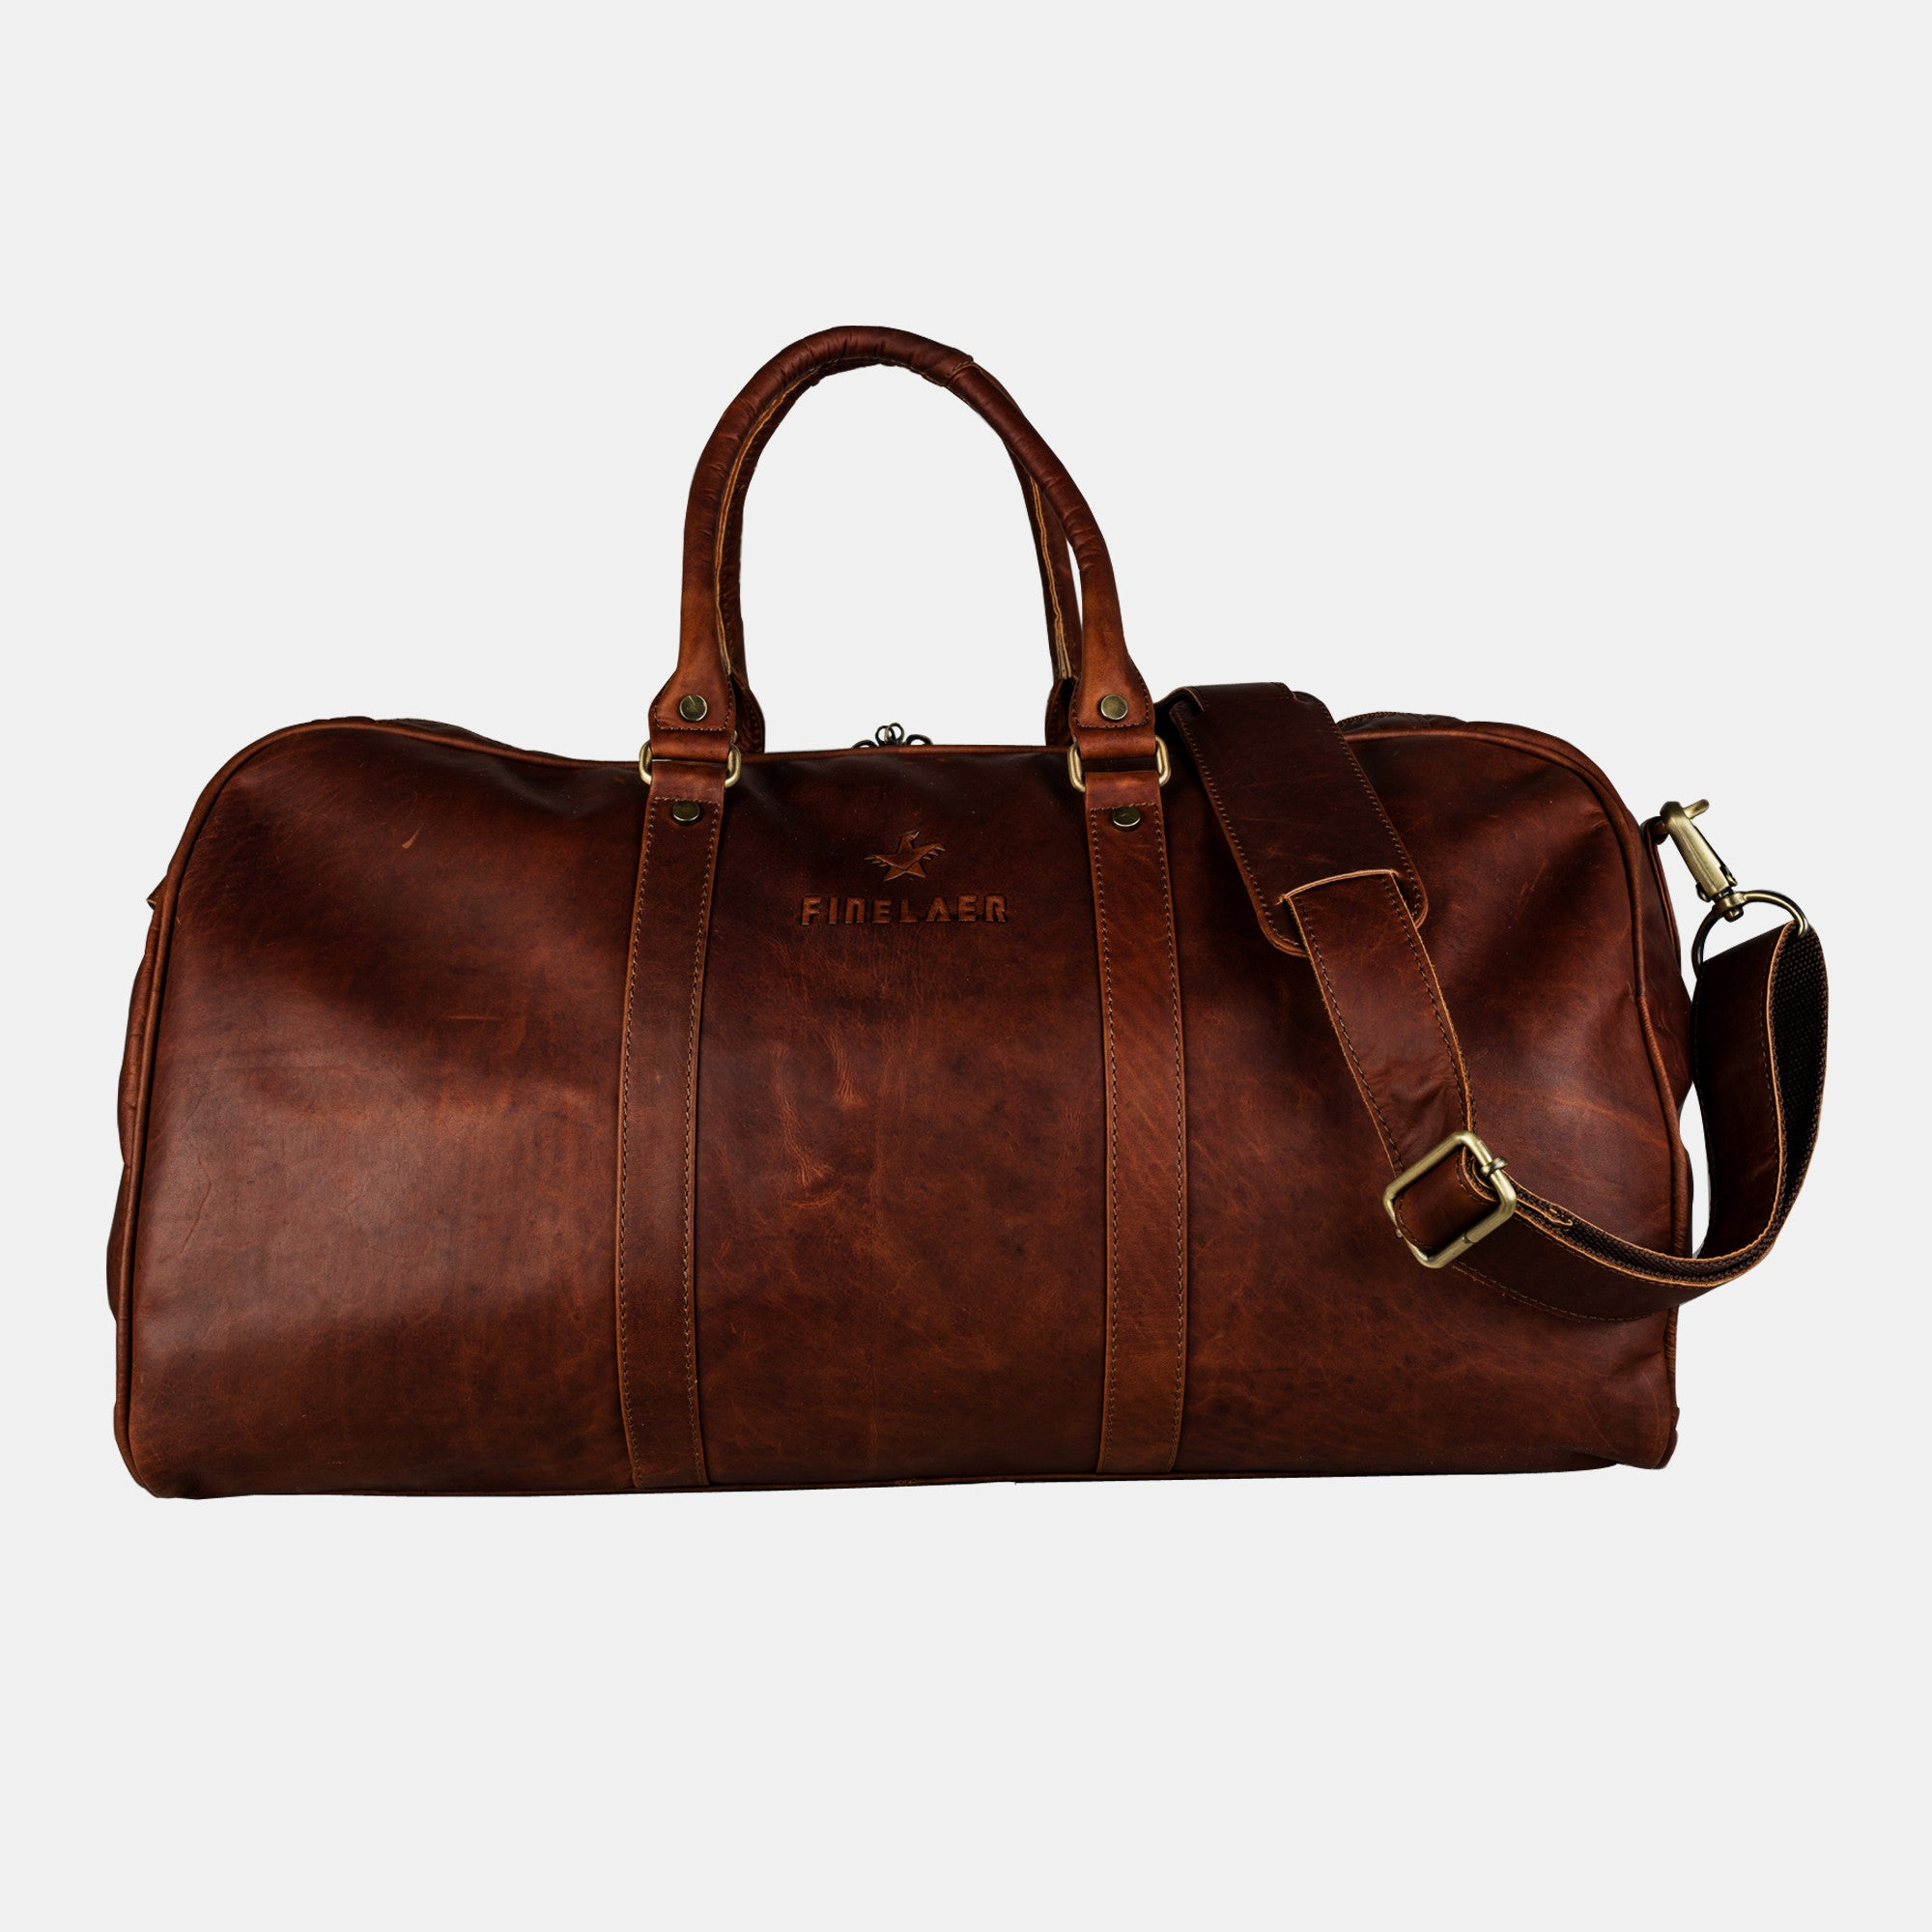 Valentine Offer Leather Carry On Luggage Weekend Overnight Travel Gym Duffle Bag Brown For Men Women